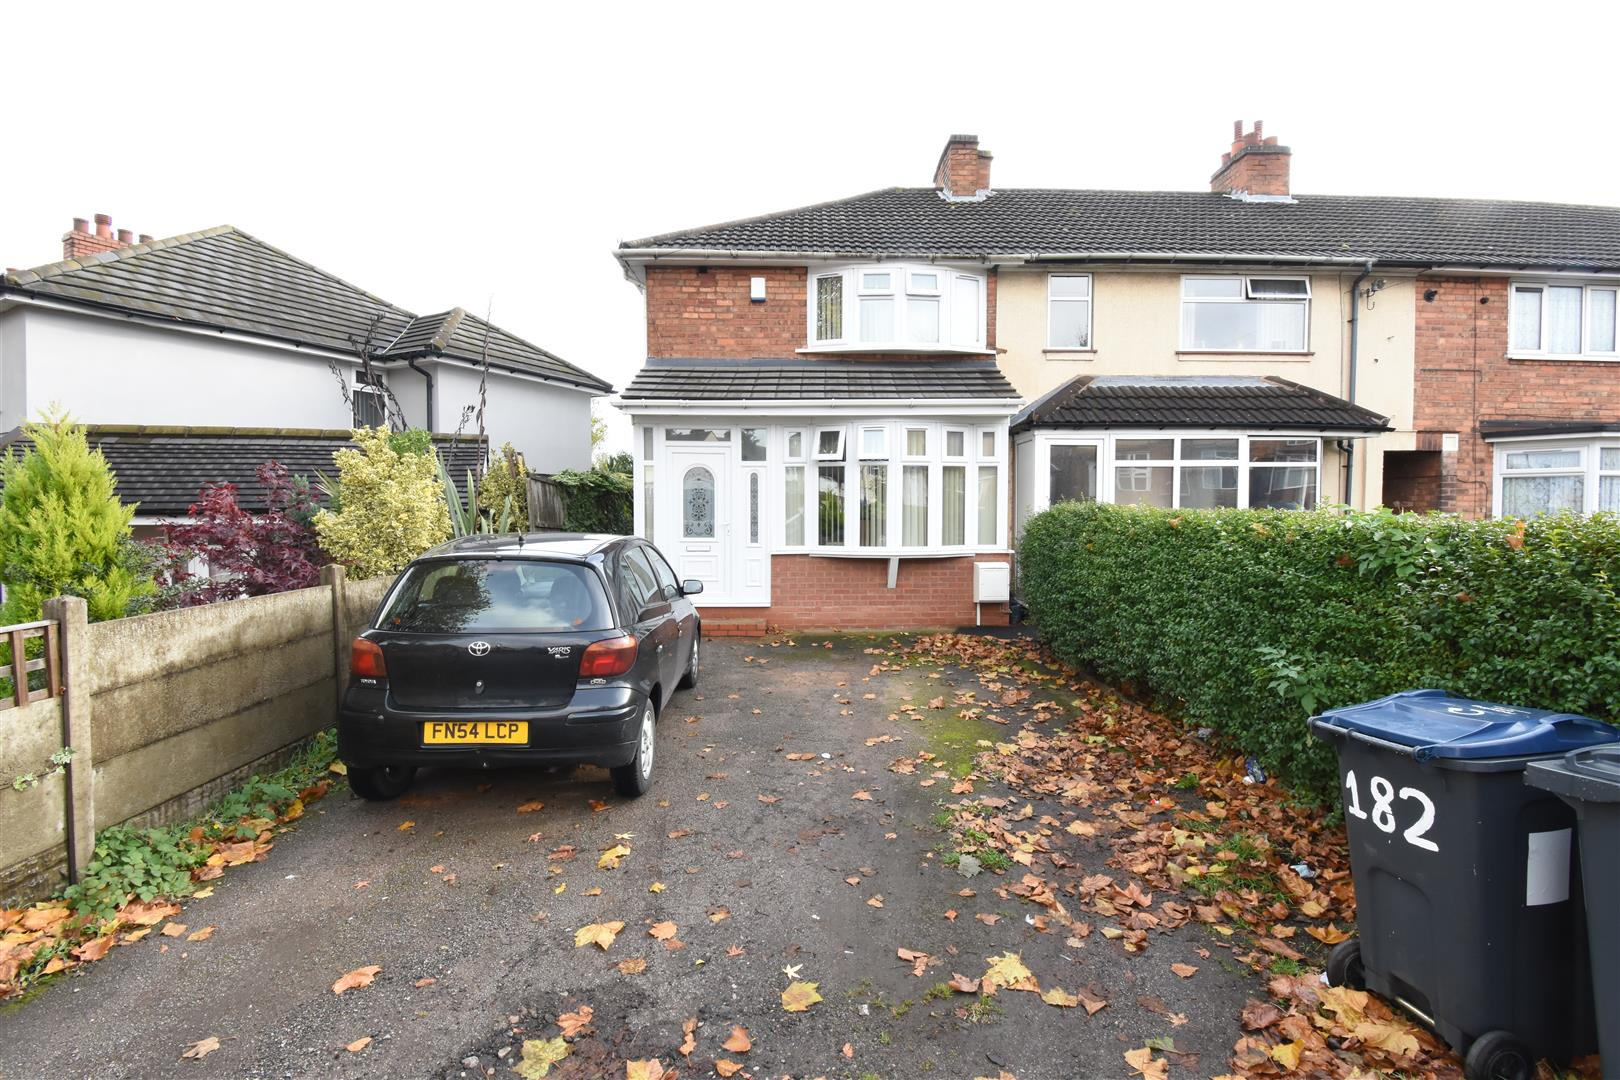 3 bed  for sale in Eastfield Road, Birmingham - Property Image 1